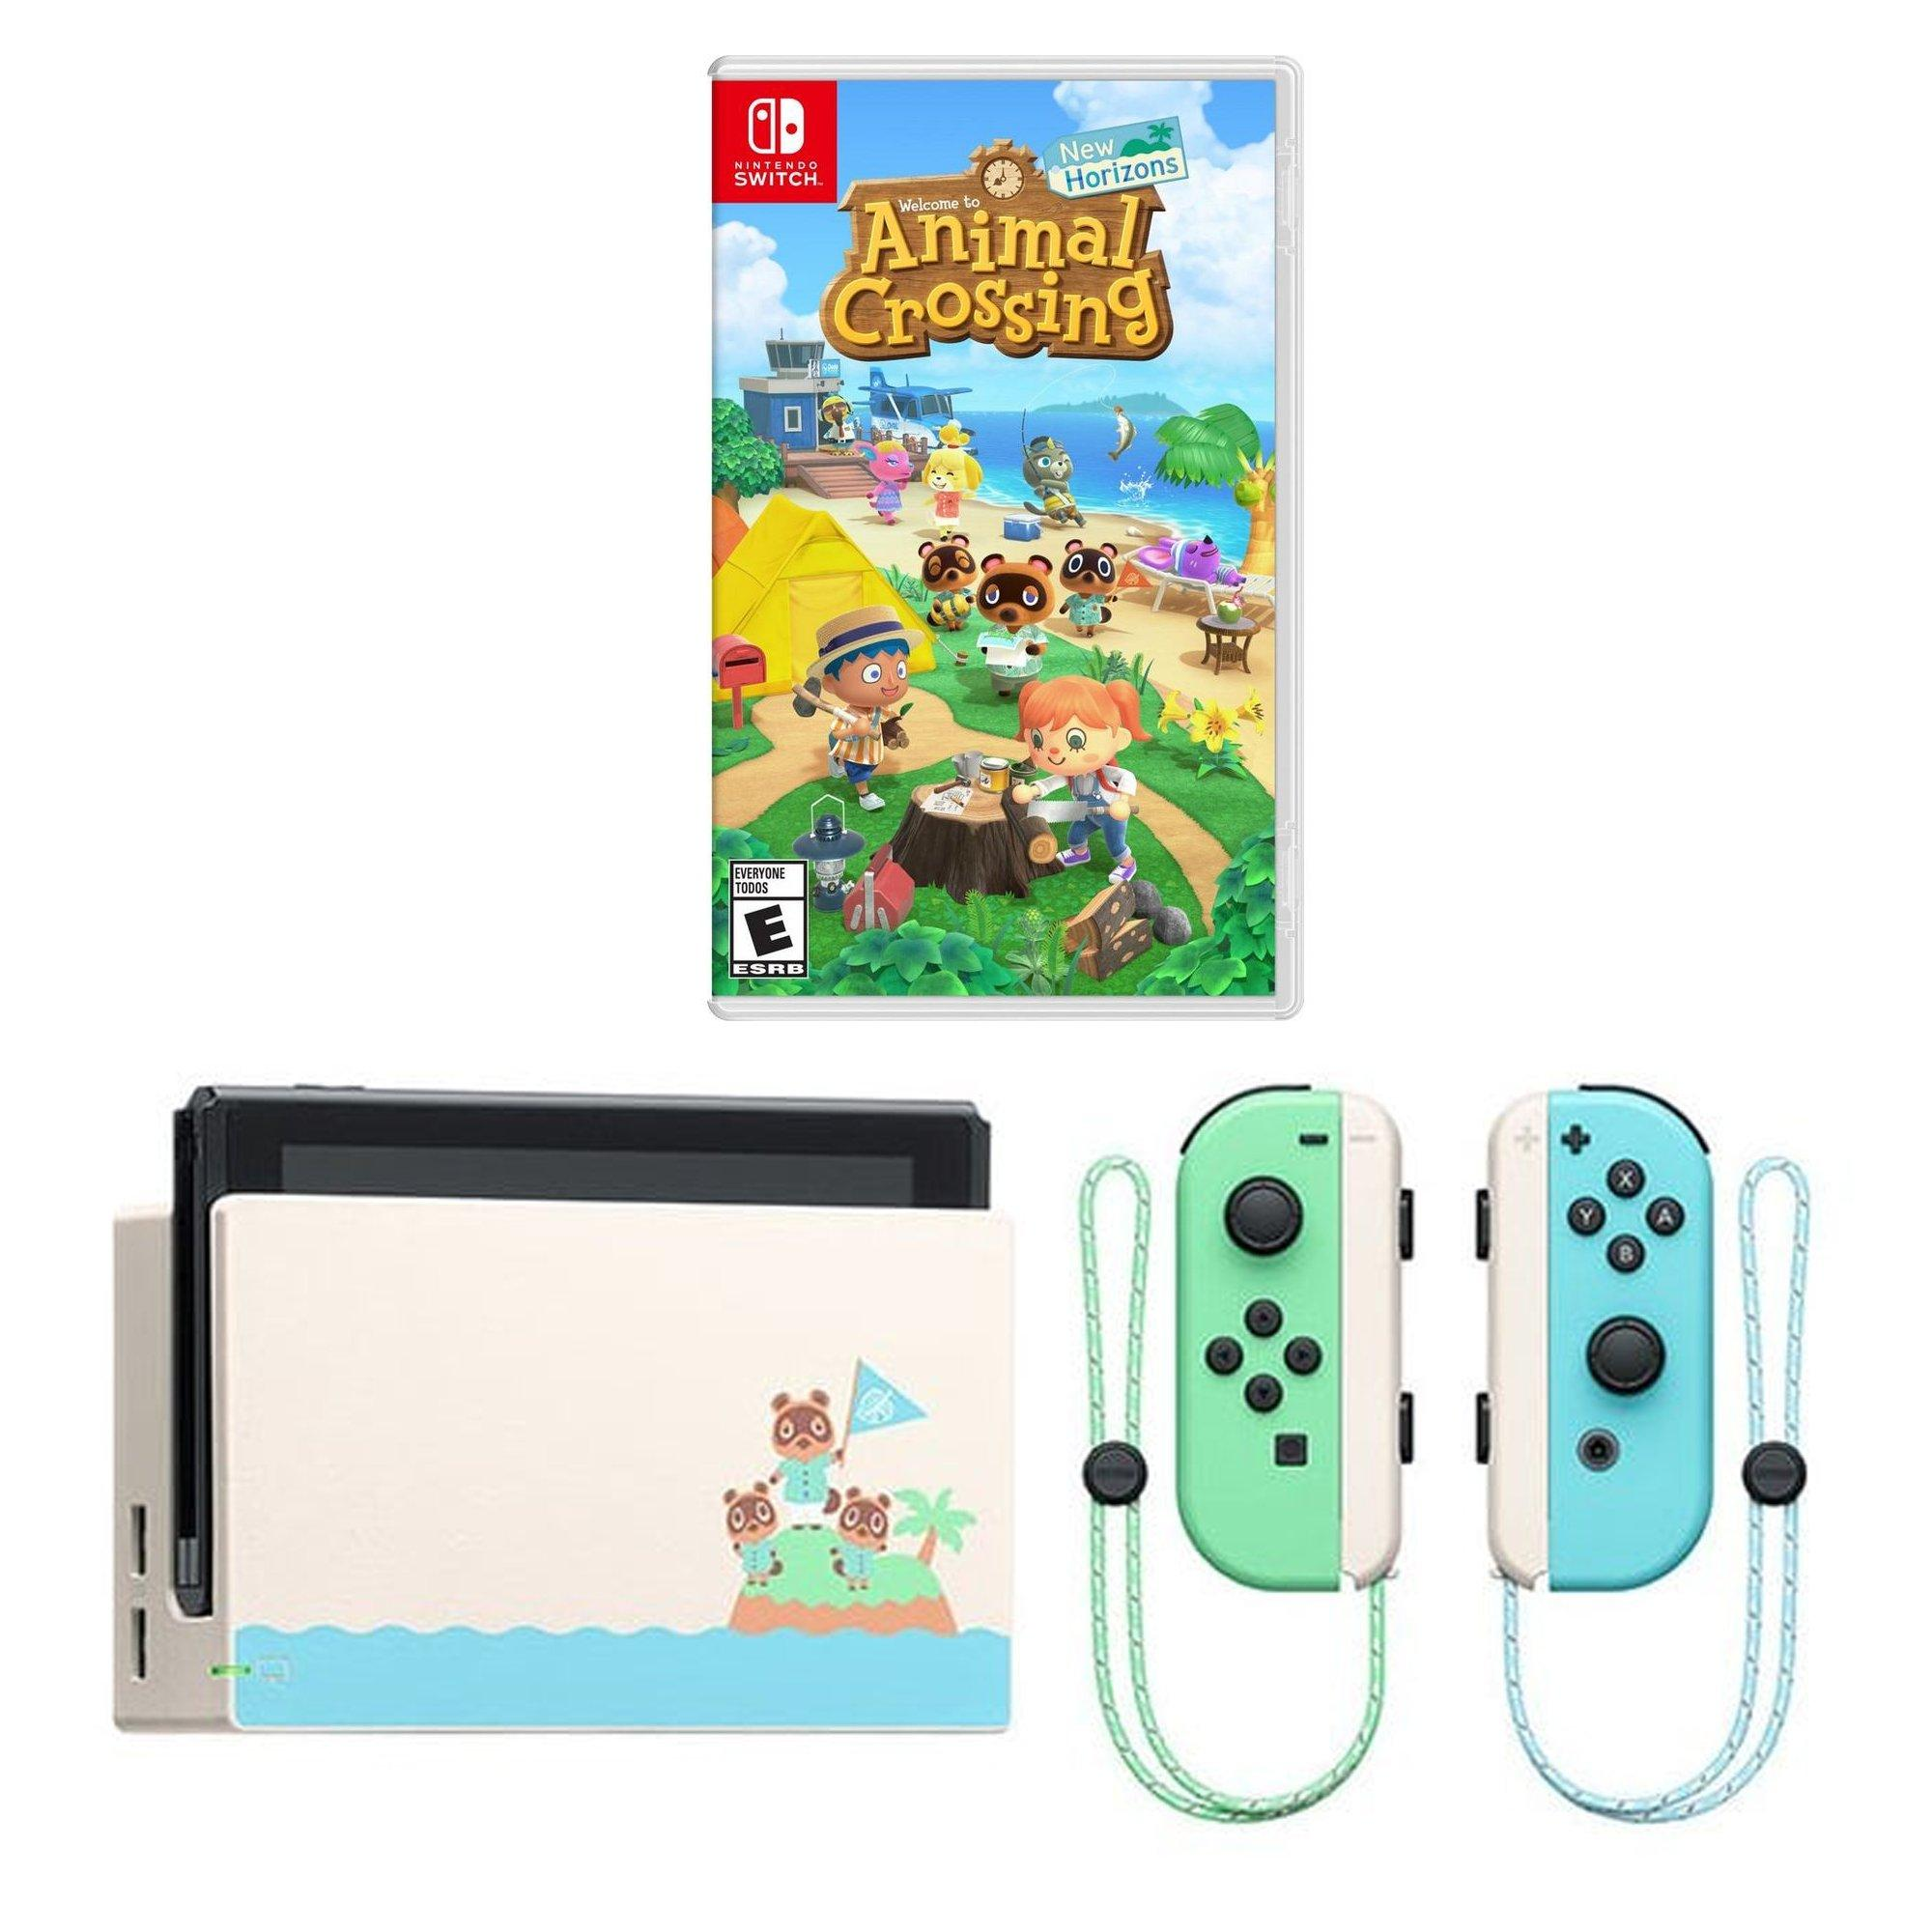 Nintendo Switch Animal Crossing New Horizons Edition With Digital